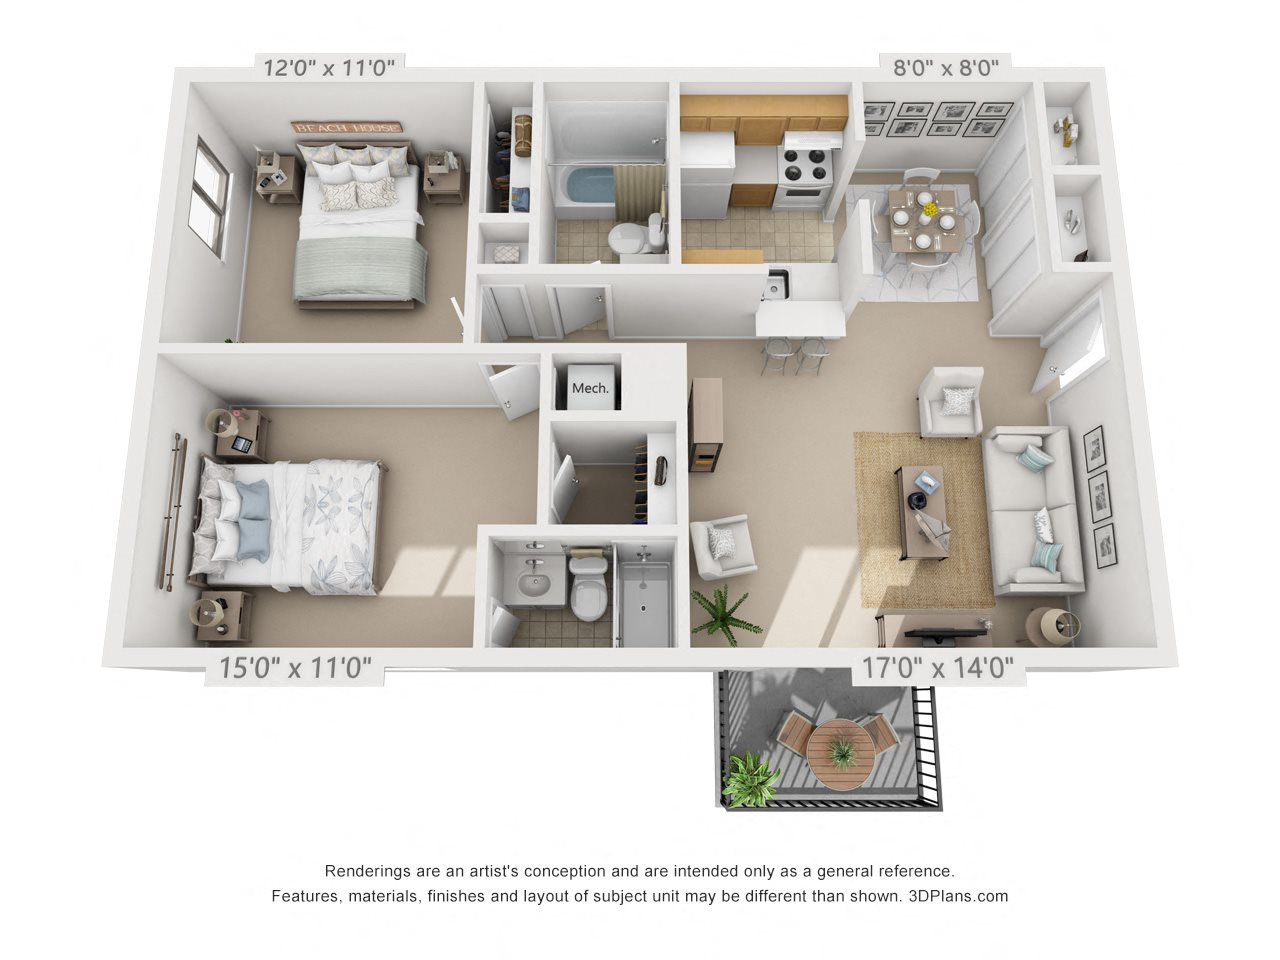 2 Bedroom, 2 Bath (Courtyard View) Floor Plan 12